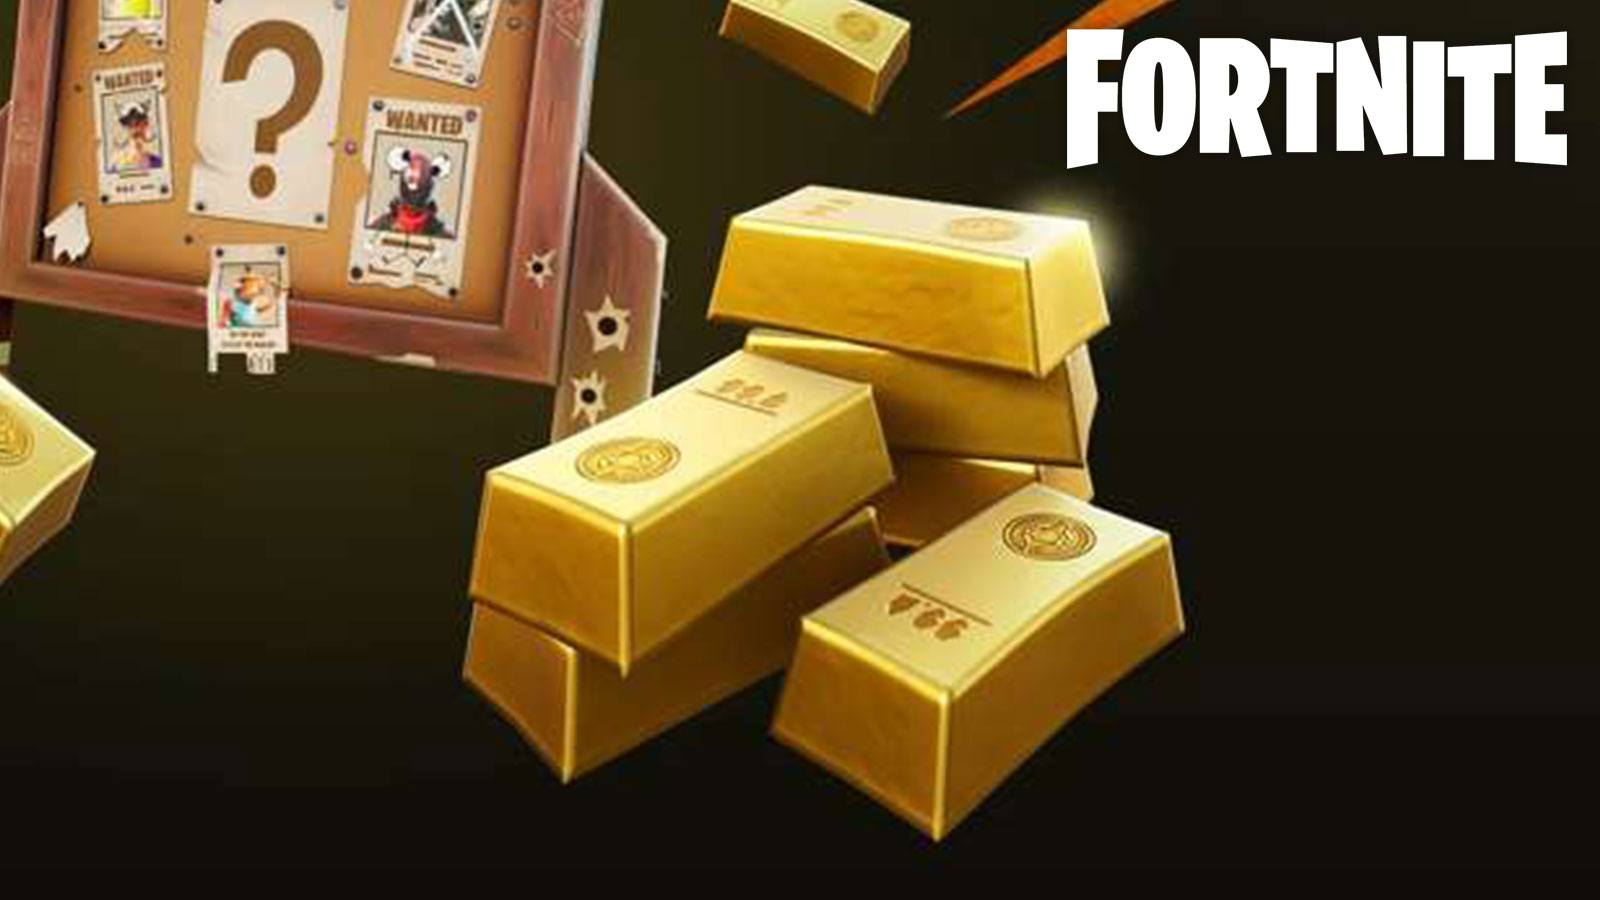 lingots d'or Fortnite